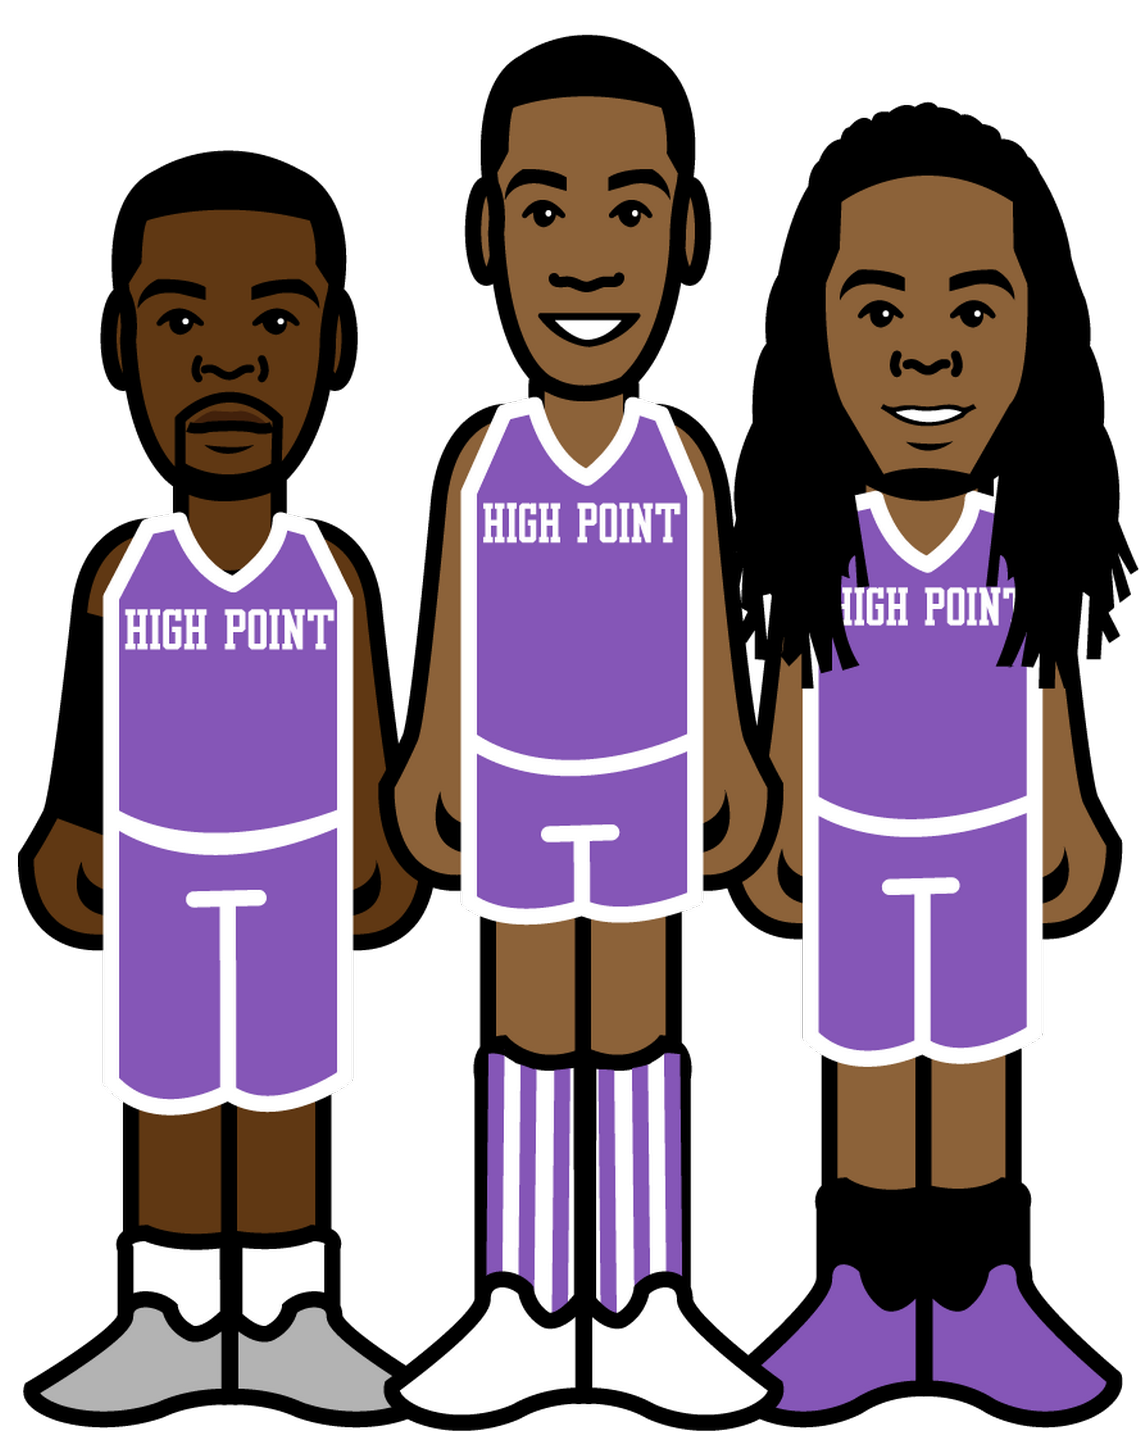 The basketball team clipart svg library Imaginary All-Time Big South Conference 3-on-3 Basketball Tournament ... svg library